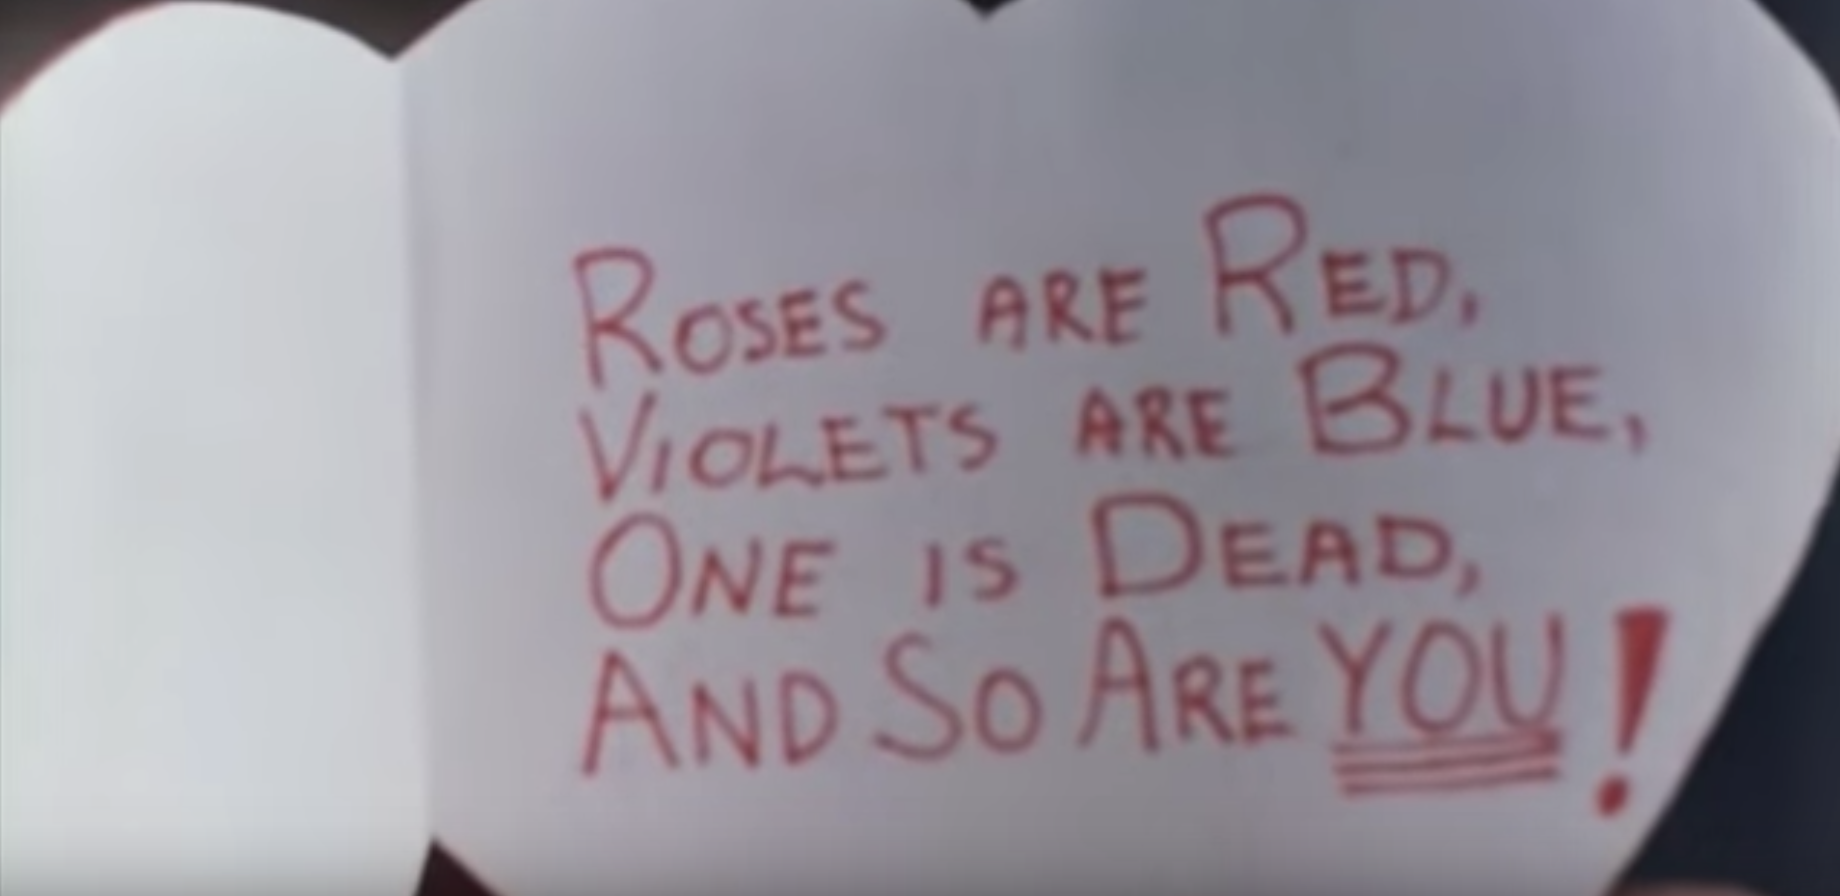 Image courtesy My Bloody Valentine Trailer via  Pyrkenstein  on YouTube